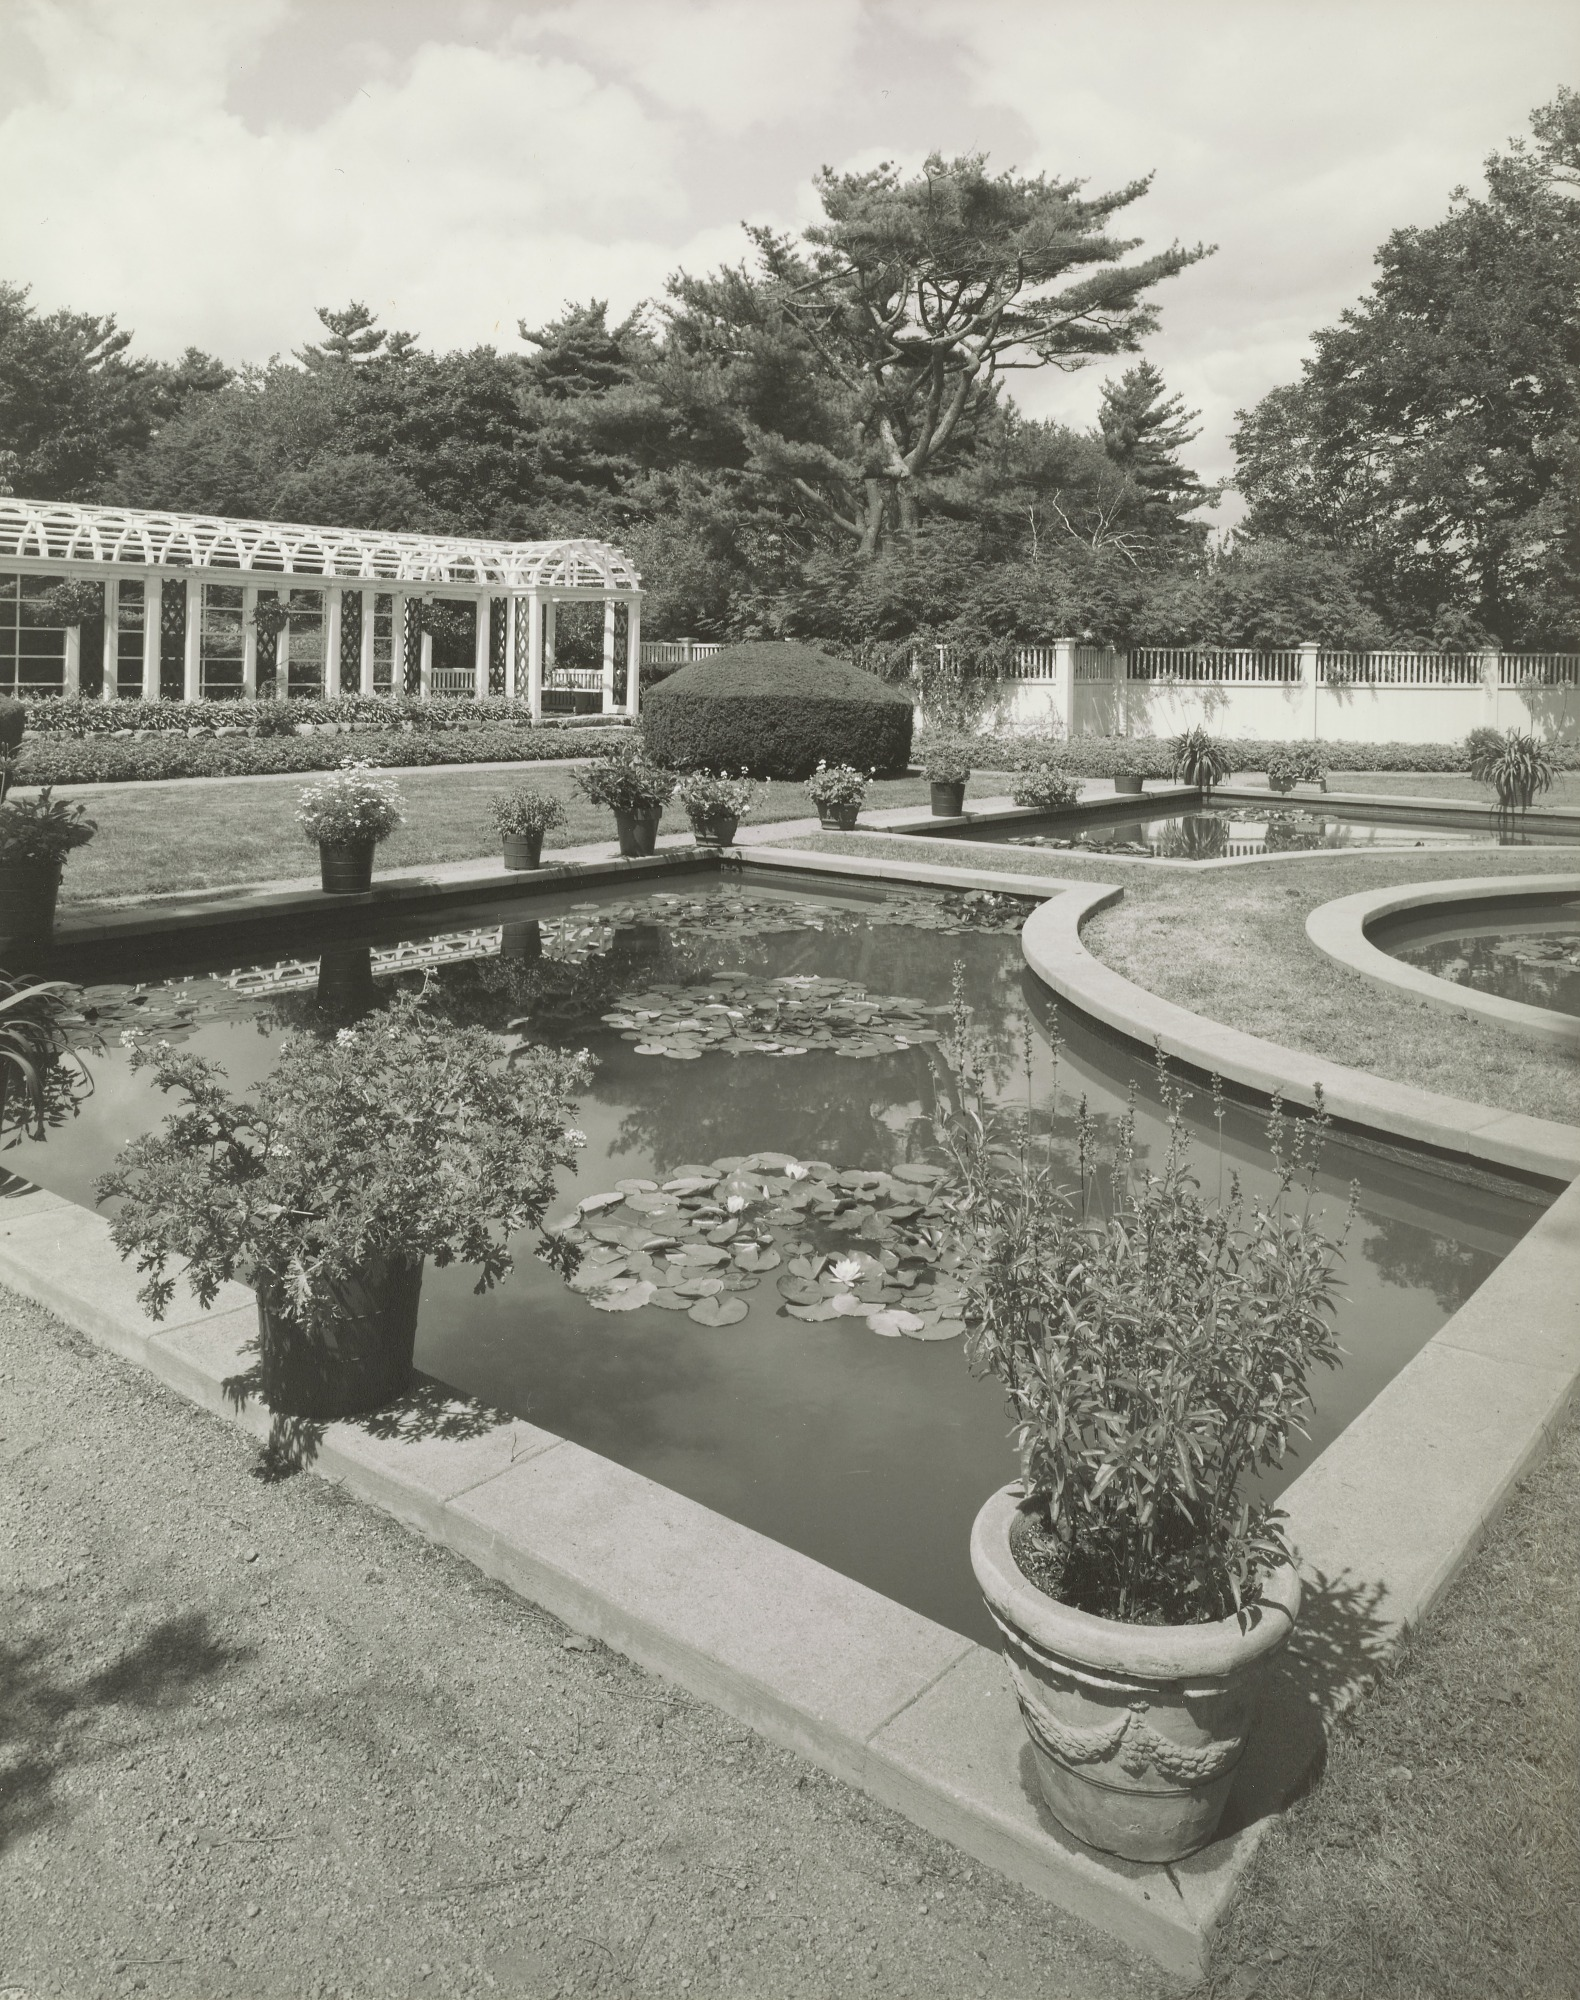 Italianate garden and pool at The Chimneys, Manchester, Massachusetts, 1920s